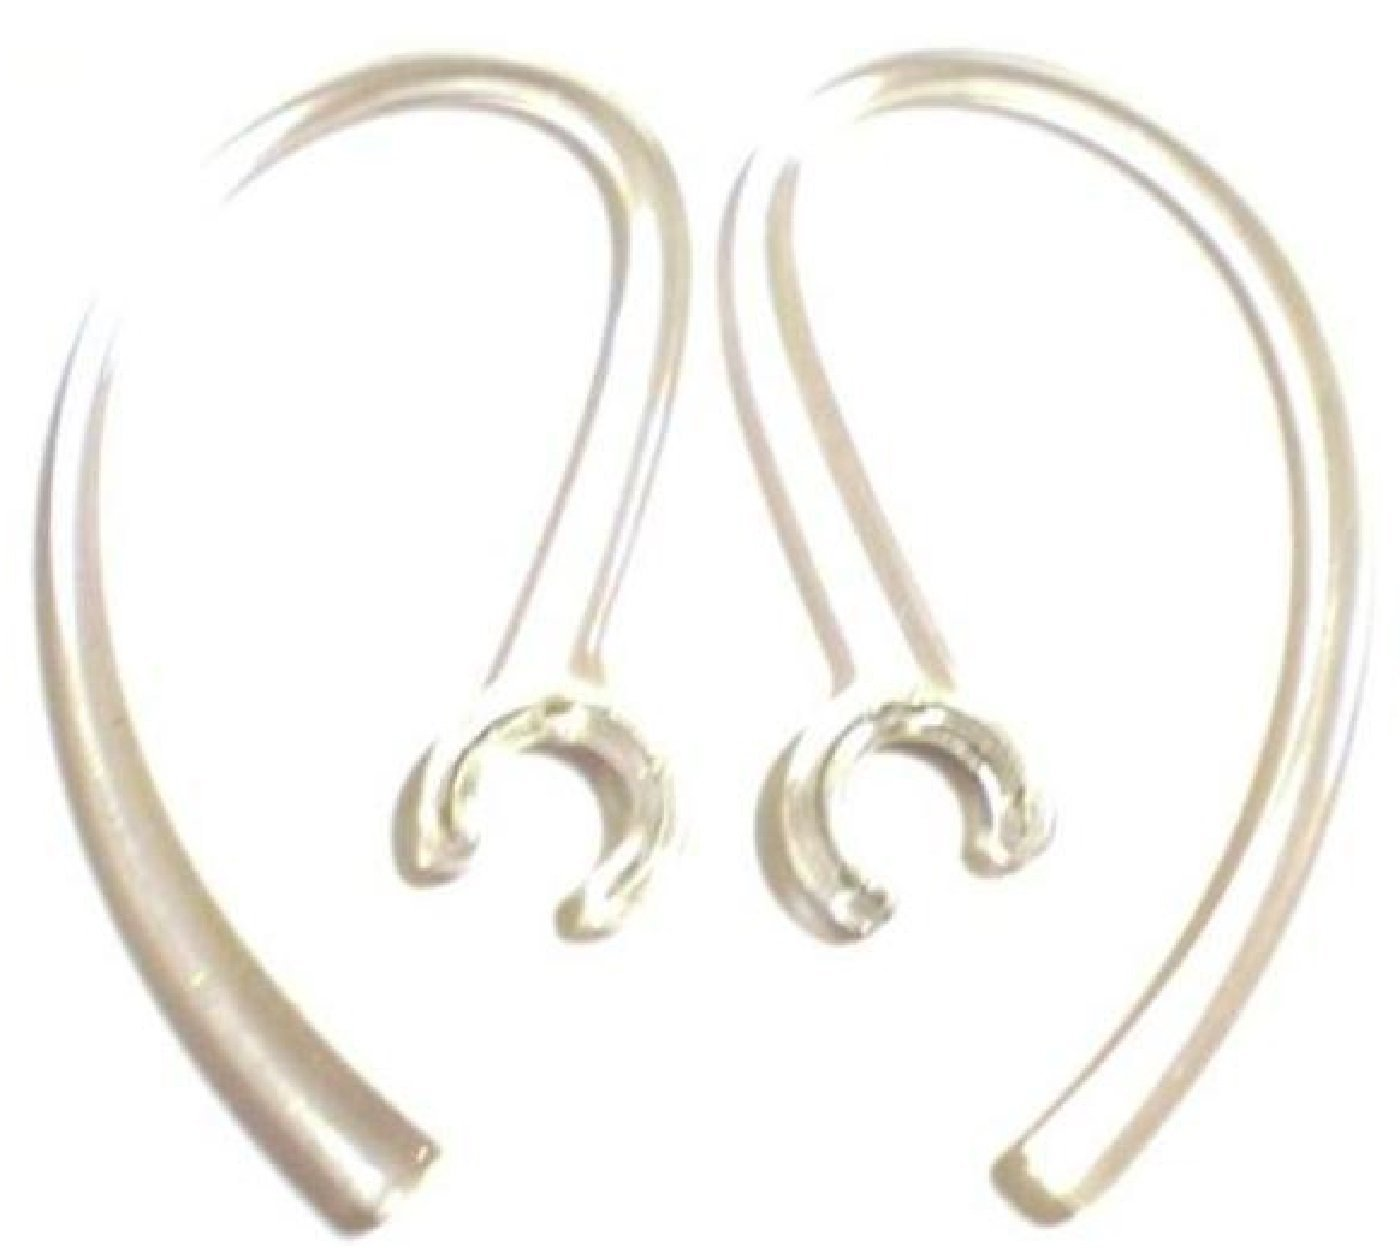 2Clear Good Quality Earhooks for Sony CECHYA-0076 and Rocketfish Sony PS3 MD Playstation 3 Play Station 3 Gaming Game Wireless Bluetooth Headset Ear Hook Loop Clip Earhook Hooks Loops Clips Earloop Earclip Earloops Earclips Replacement Part Parts